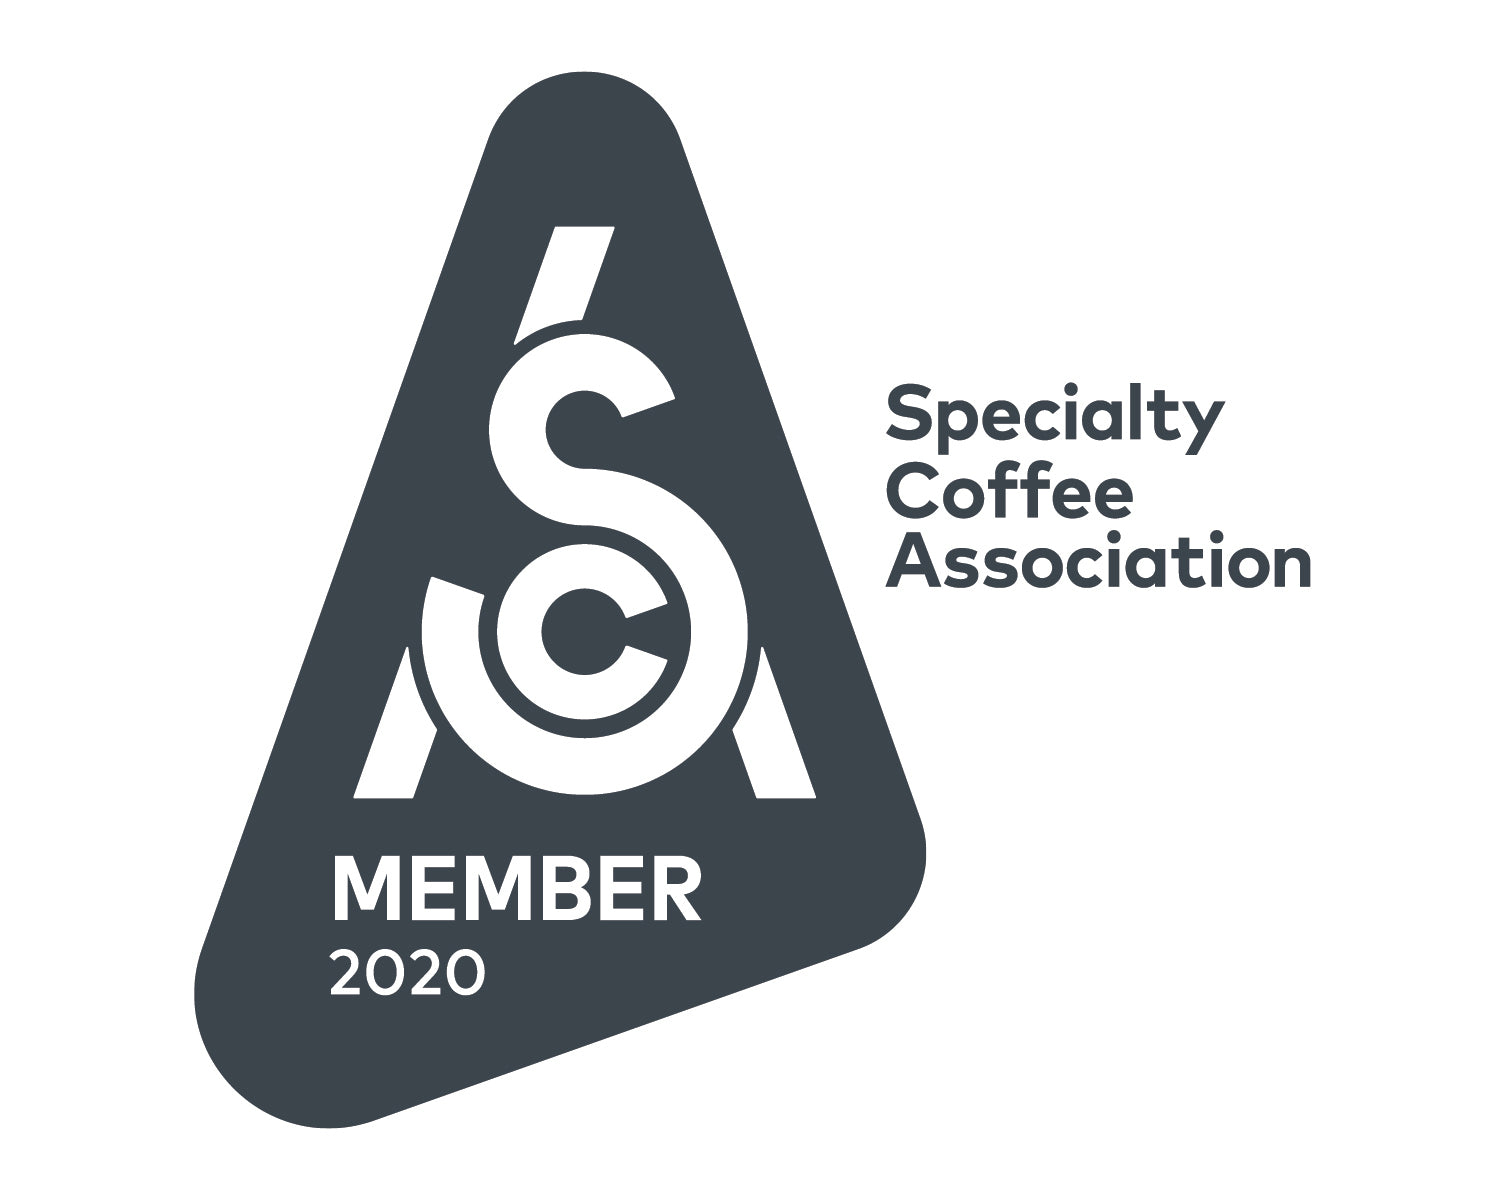 Specialty Coffee Association (SCA) 2020 Membership Badge